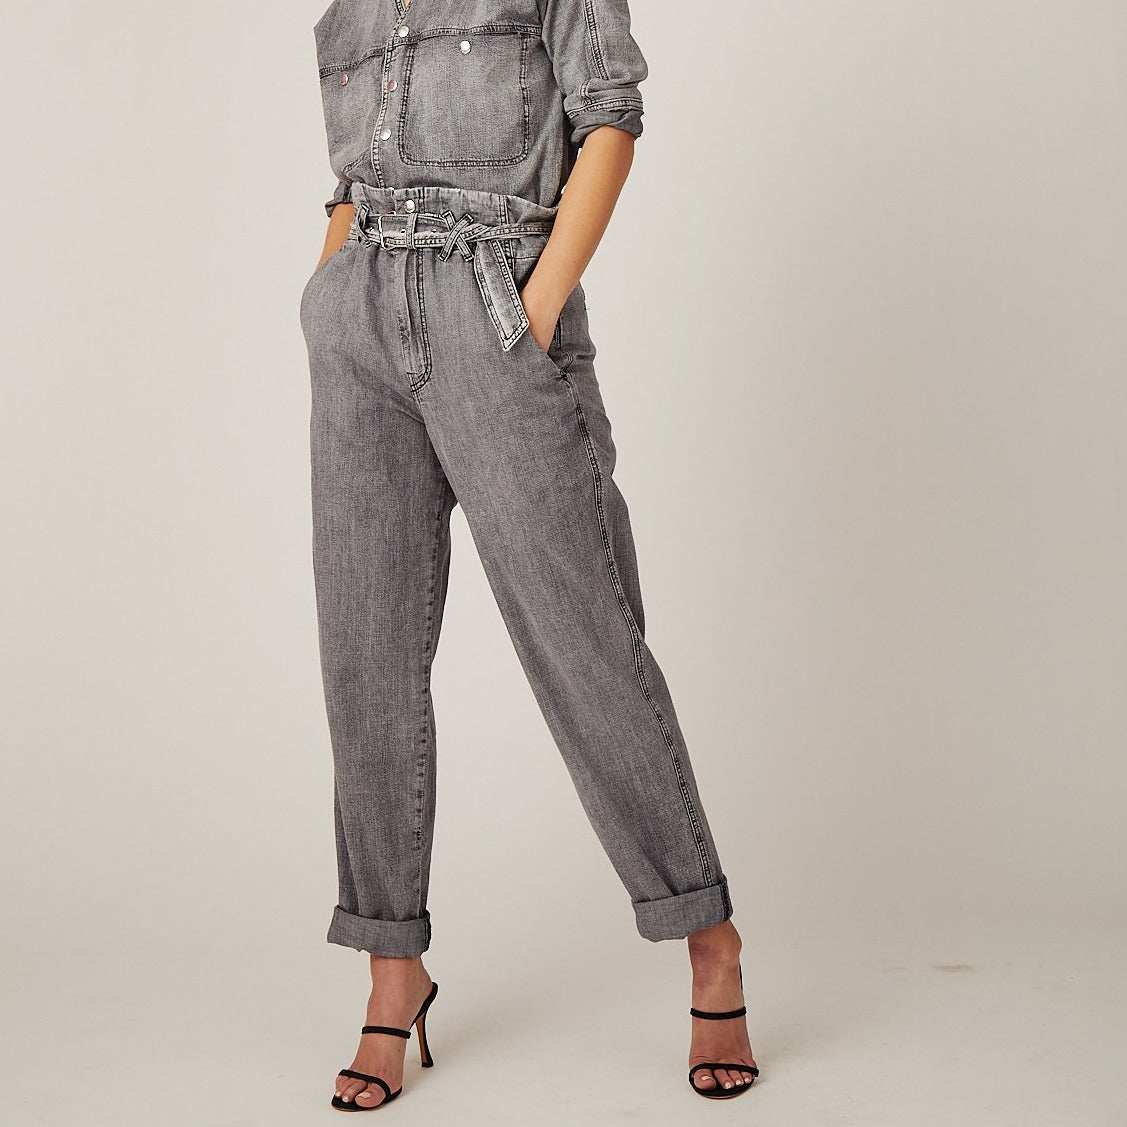 Carlyle Washed Grey Pant